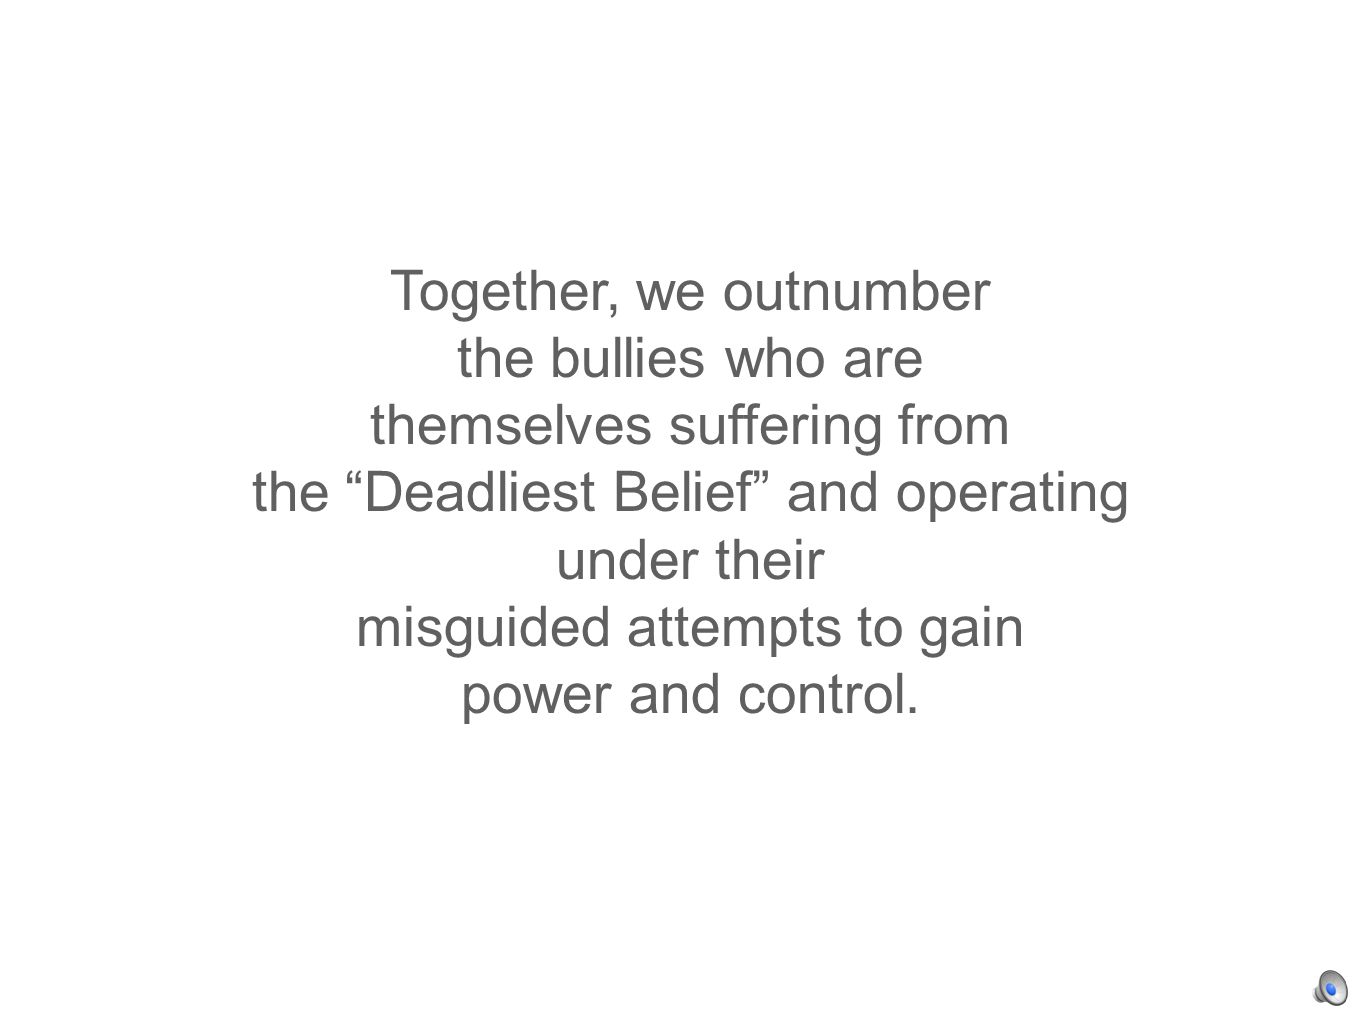 Together, we outnumber the bullies who are themselves suffering from the Deadliest Belief and operating under their misguided attempts to gain power and control.